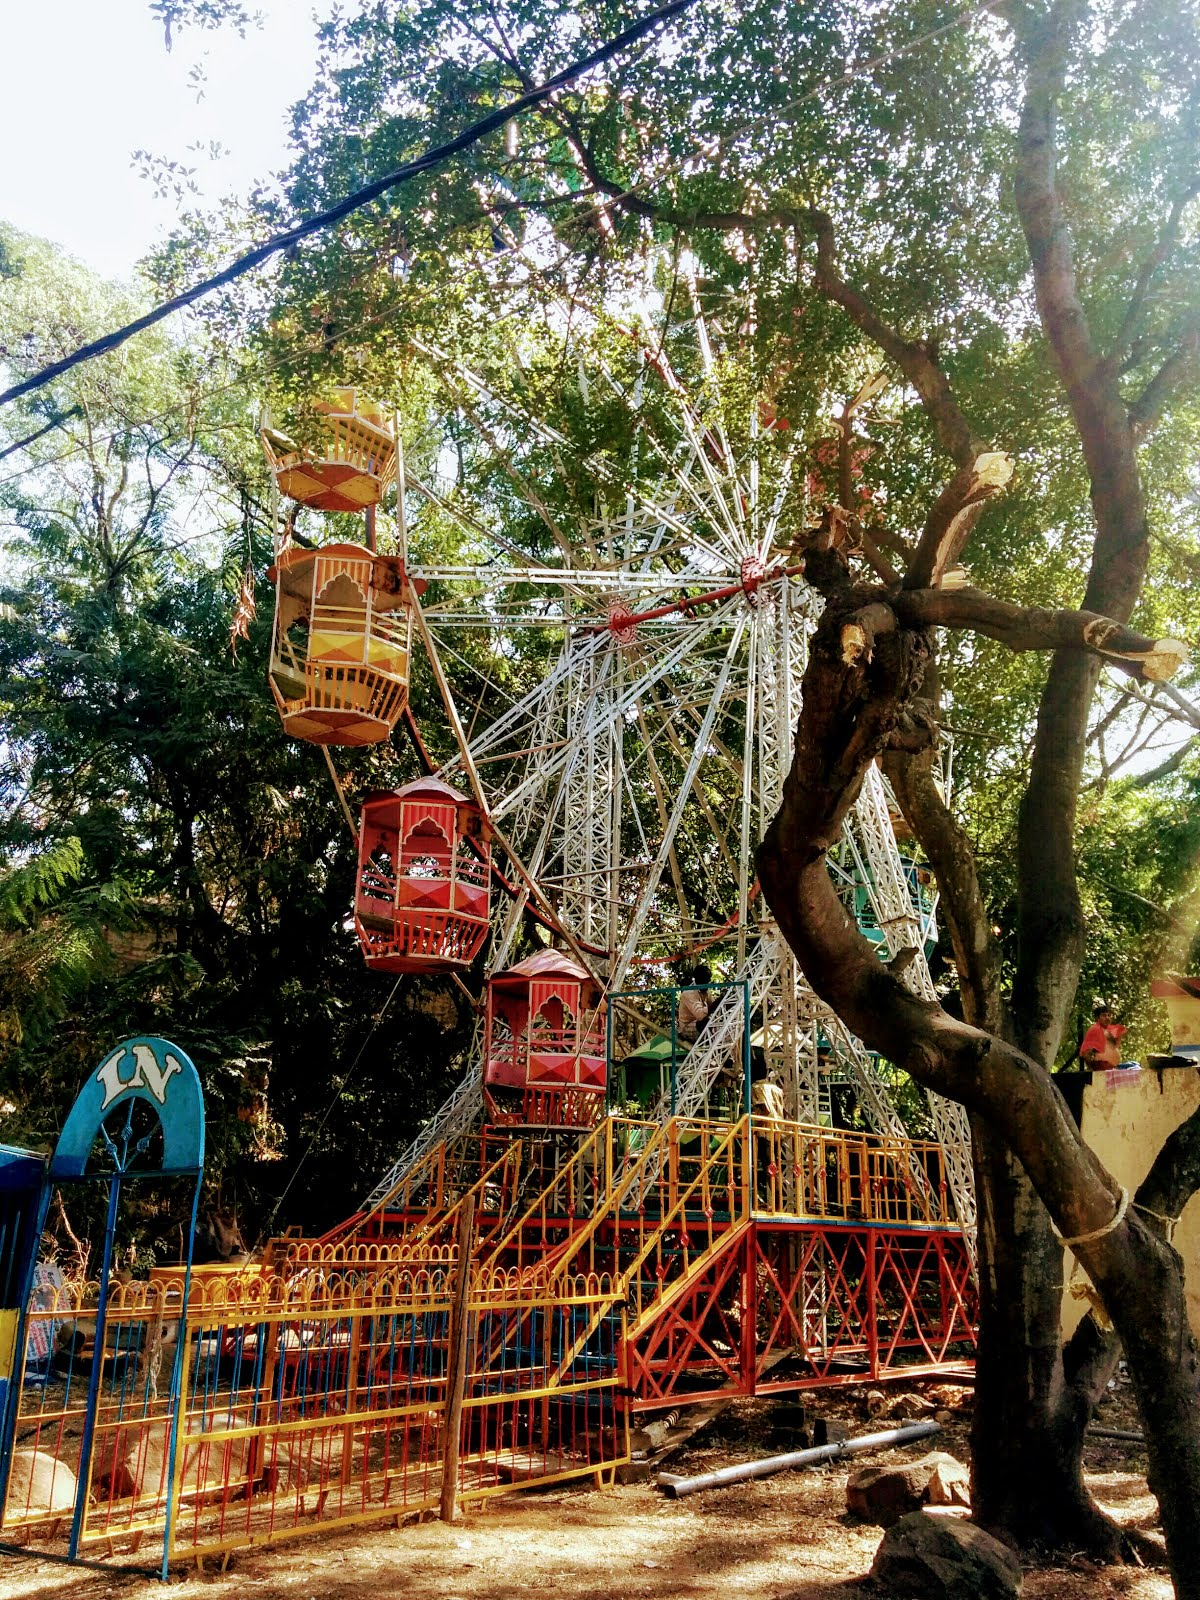 Giant wheel at Kadalekai Parishe